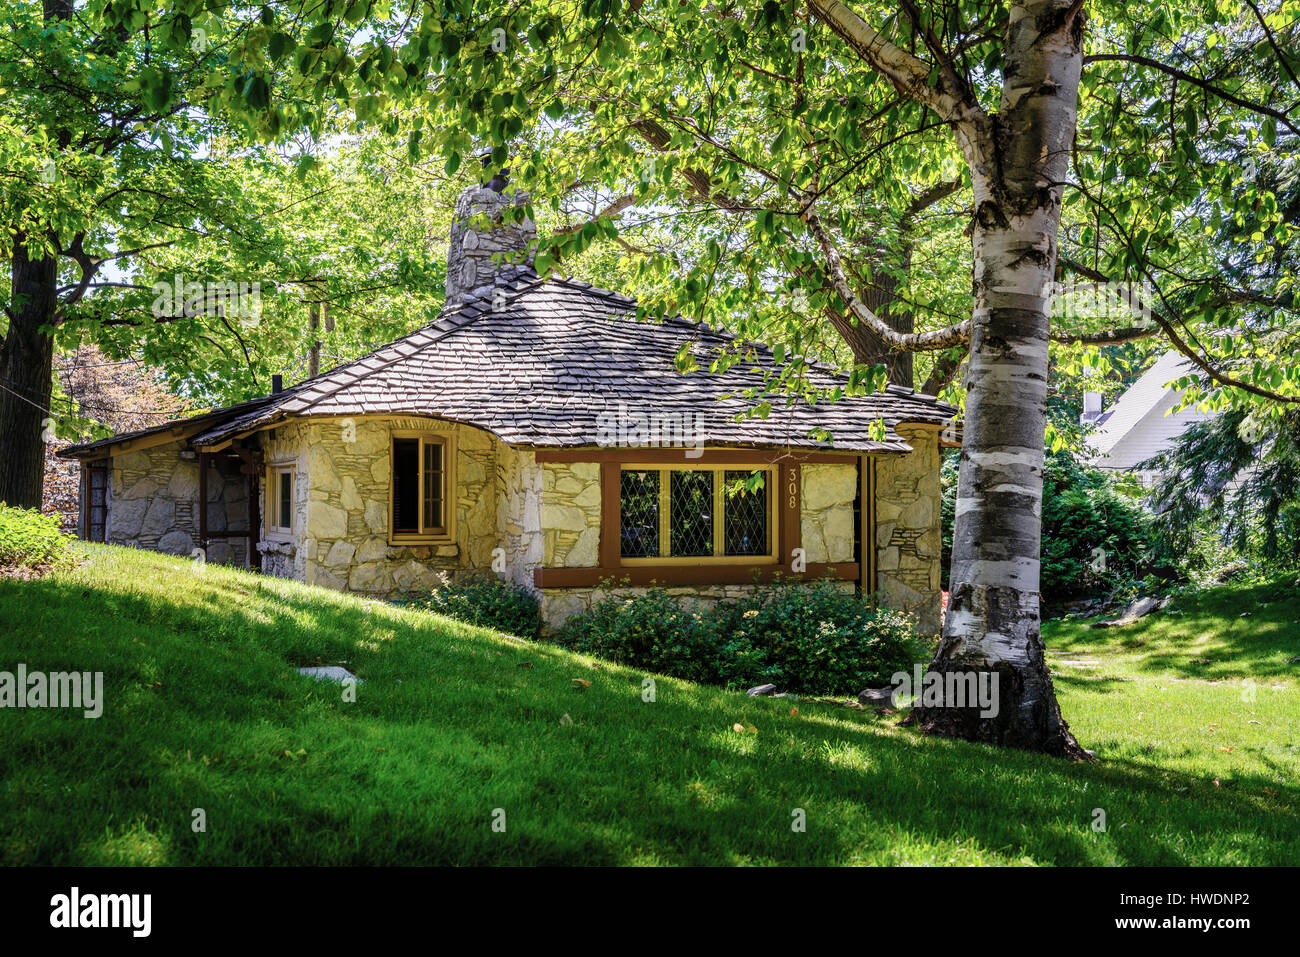 Charlevoix, Michigan, August 8, 2016: one of the unique 'hobbit homes' that serve as a local attraction - Stock Image